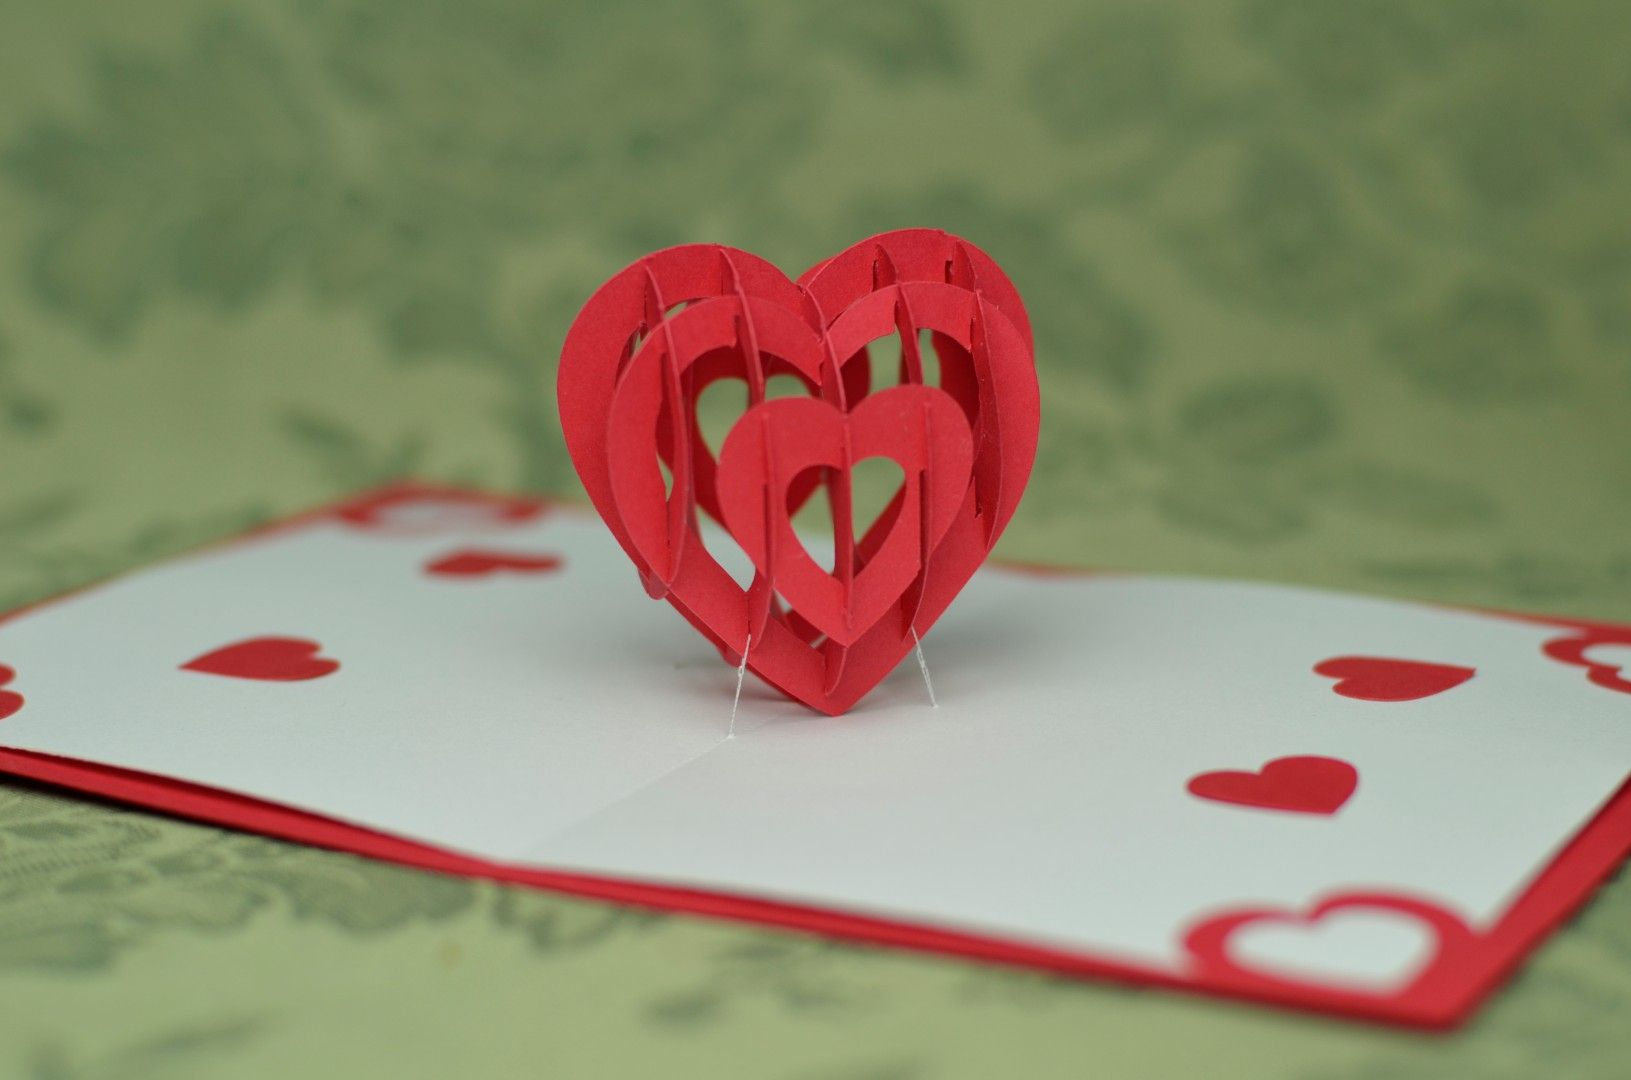 The Appealing 3d Heart Pop Up Card Template Regarding 3d Heart Pop Up Card Template Pdf Digital Imagery Be Pop Up Cards Heart Pop Up Card Pop Up Card Templates